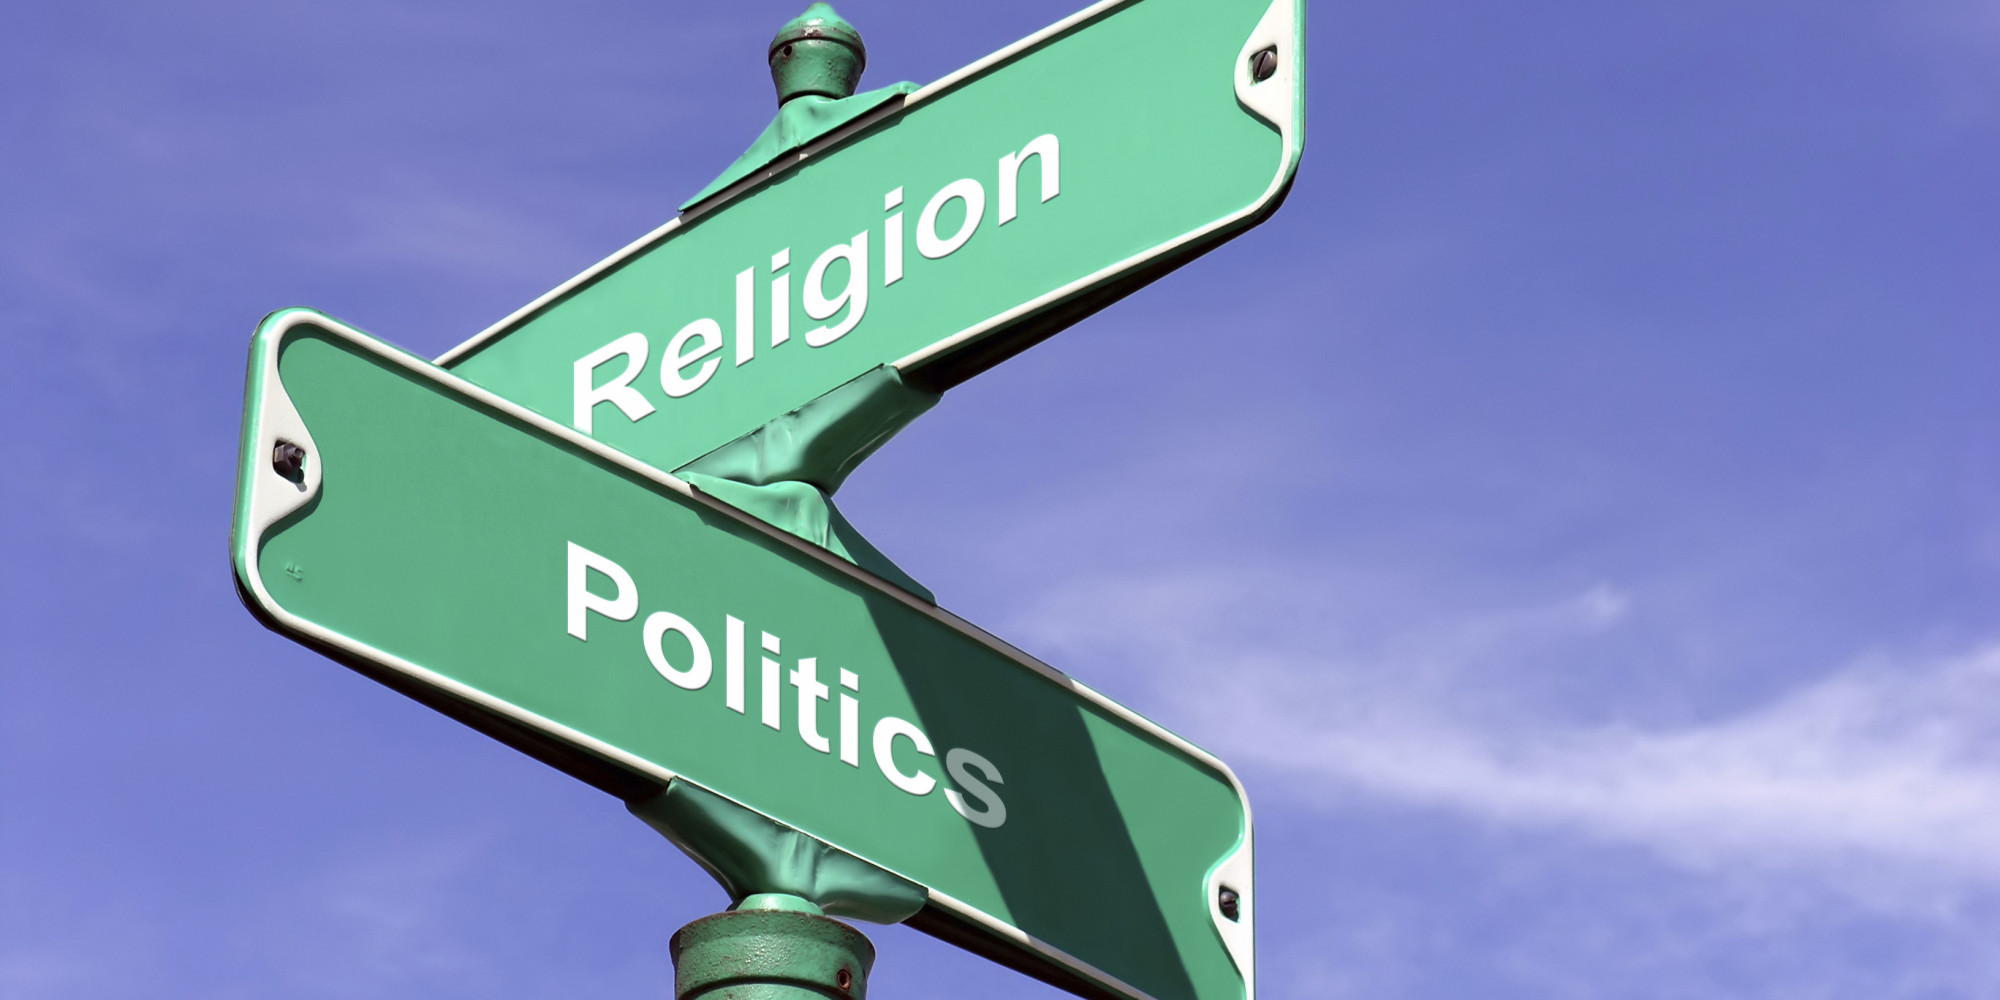 talal asad on tradition religion politics in